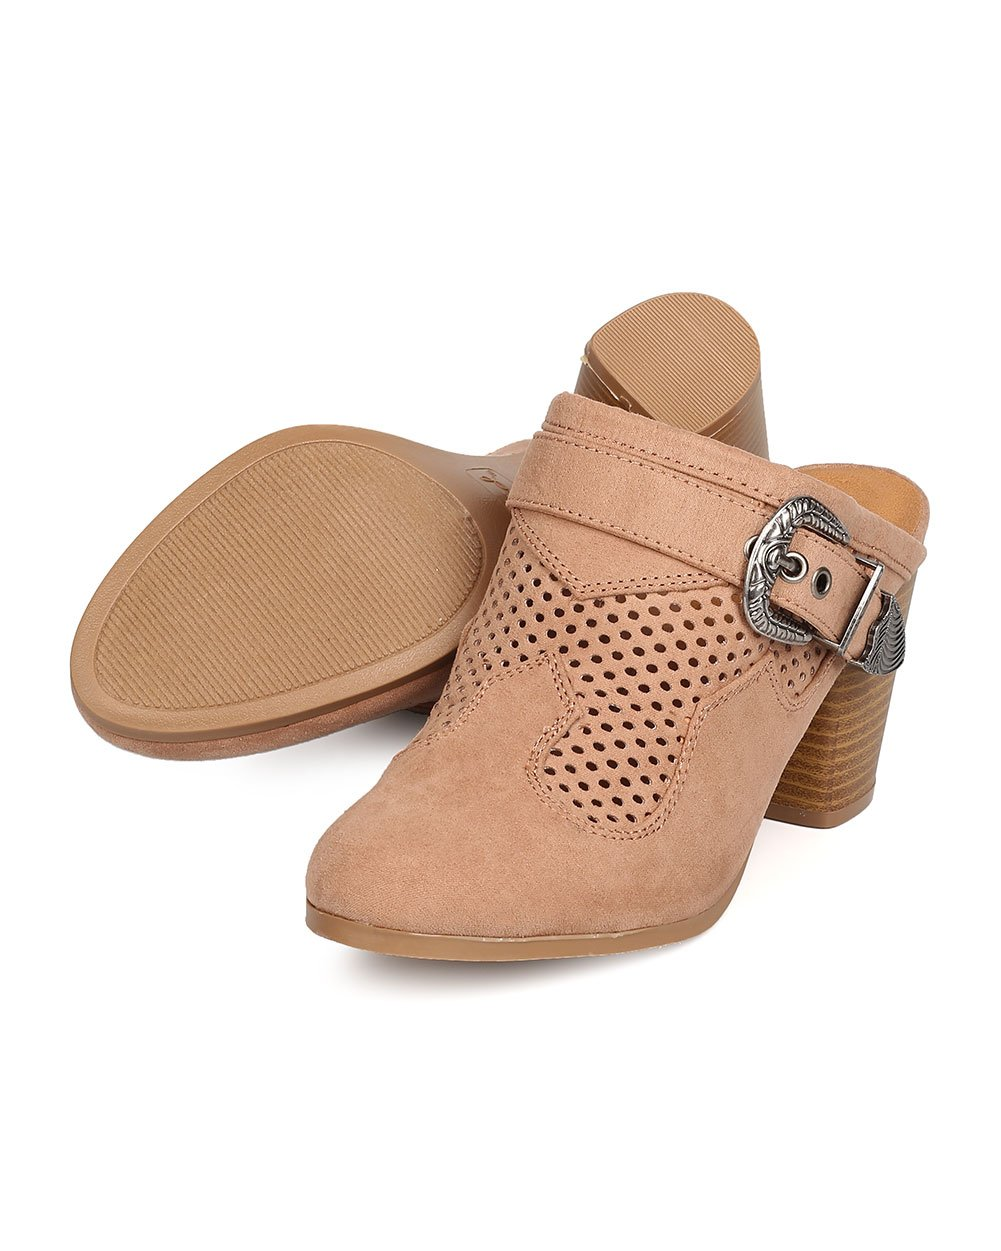 Qupid Women Faux Suede Perforated Buckled Chunky Heel Mule FD91 - Taupe (Size: 7.5) by Qupid (Image #4)